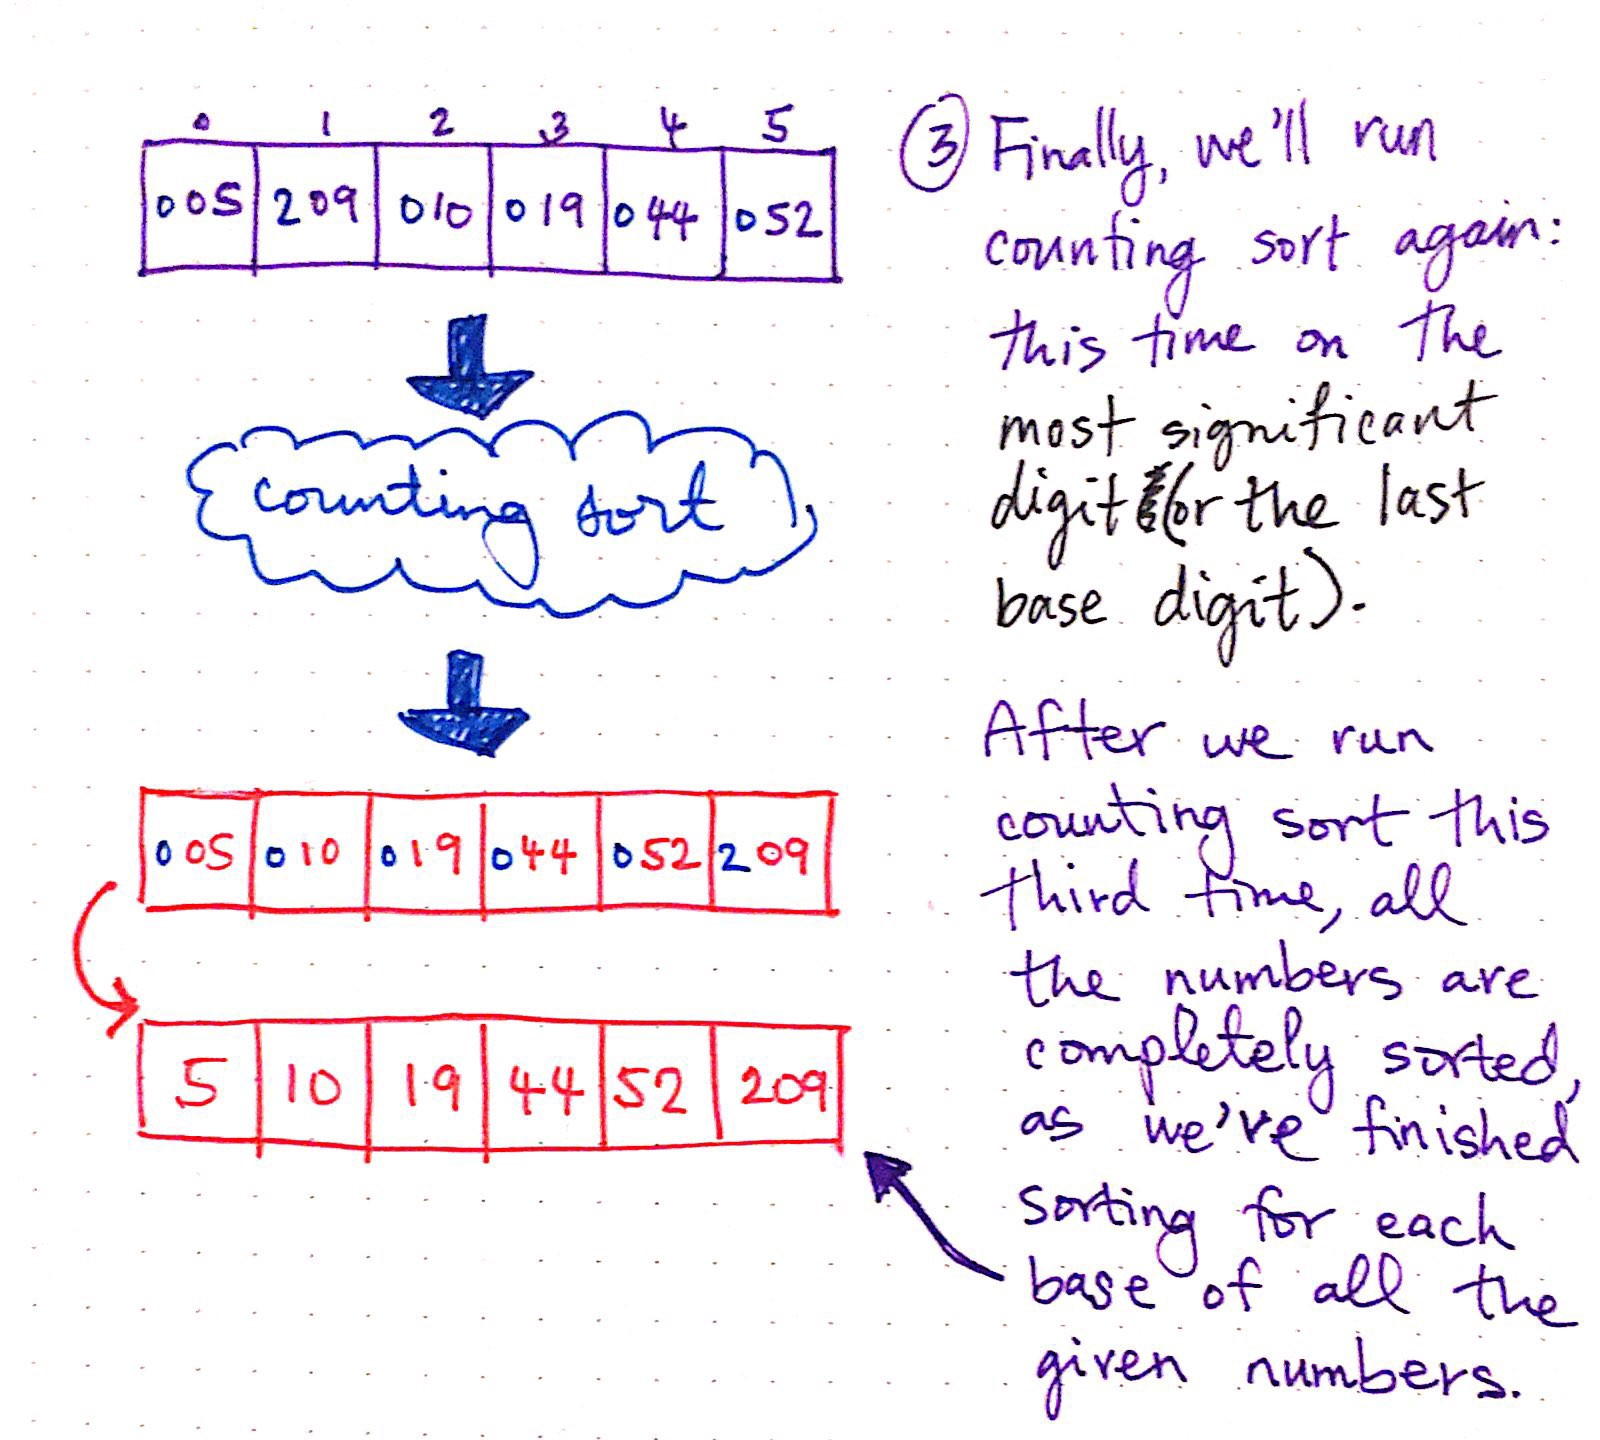 Getting To The Root Of Sorting With Radix Sort - basecs - Medium